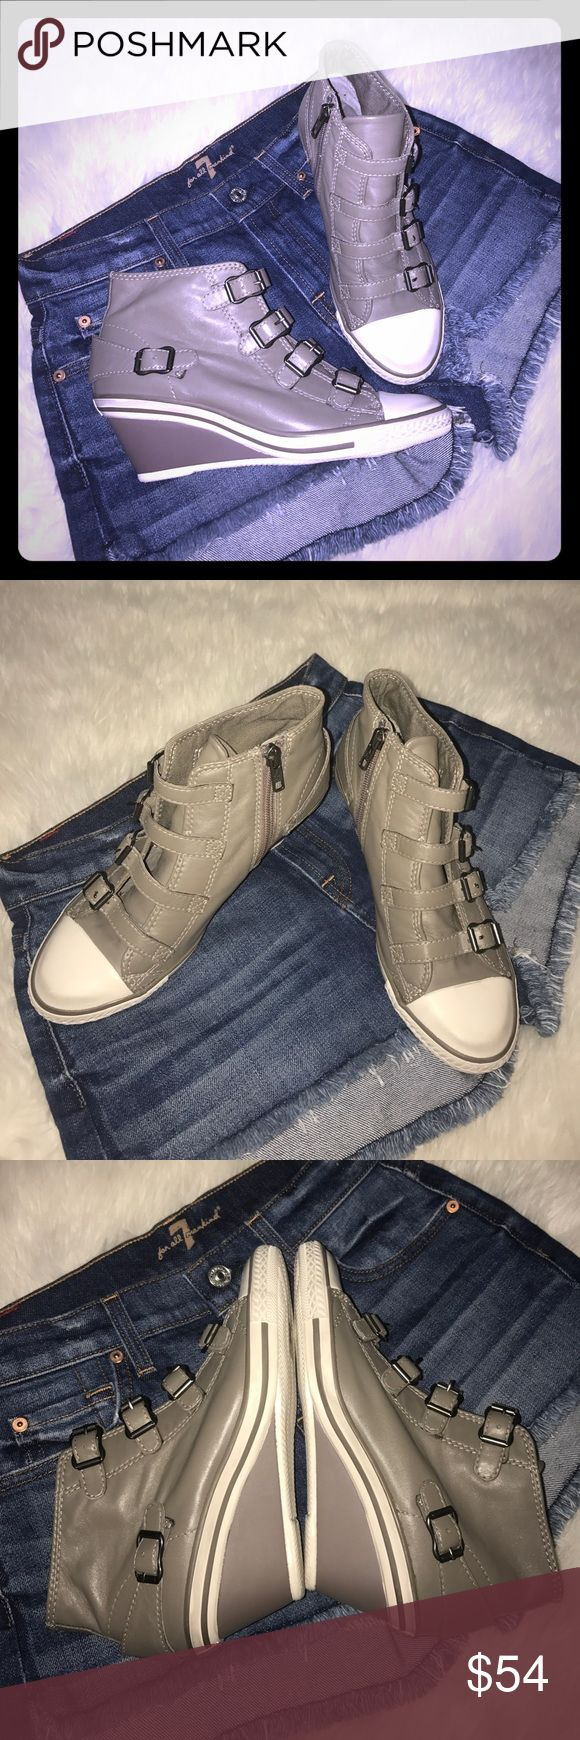 "🌸 Ash sneakers wedge Great like new!!! Ash wedge sneakers size-37 olive greyish color. Wedge-2"" Ash Shoes Sneakers"